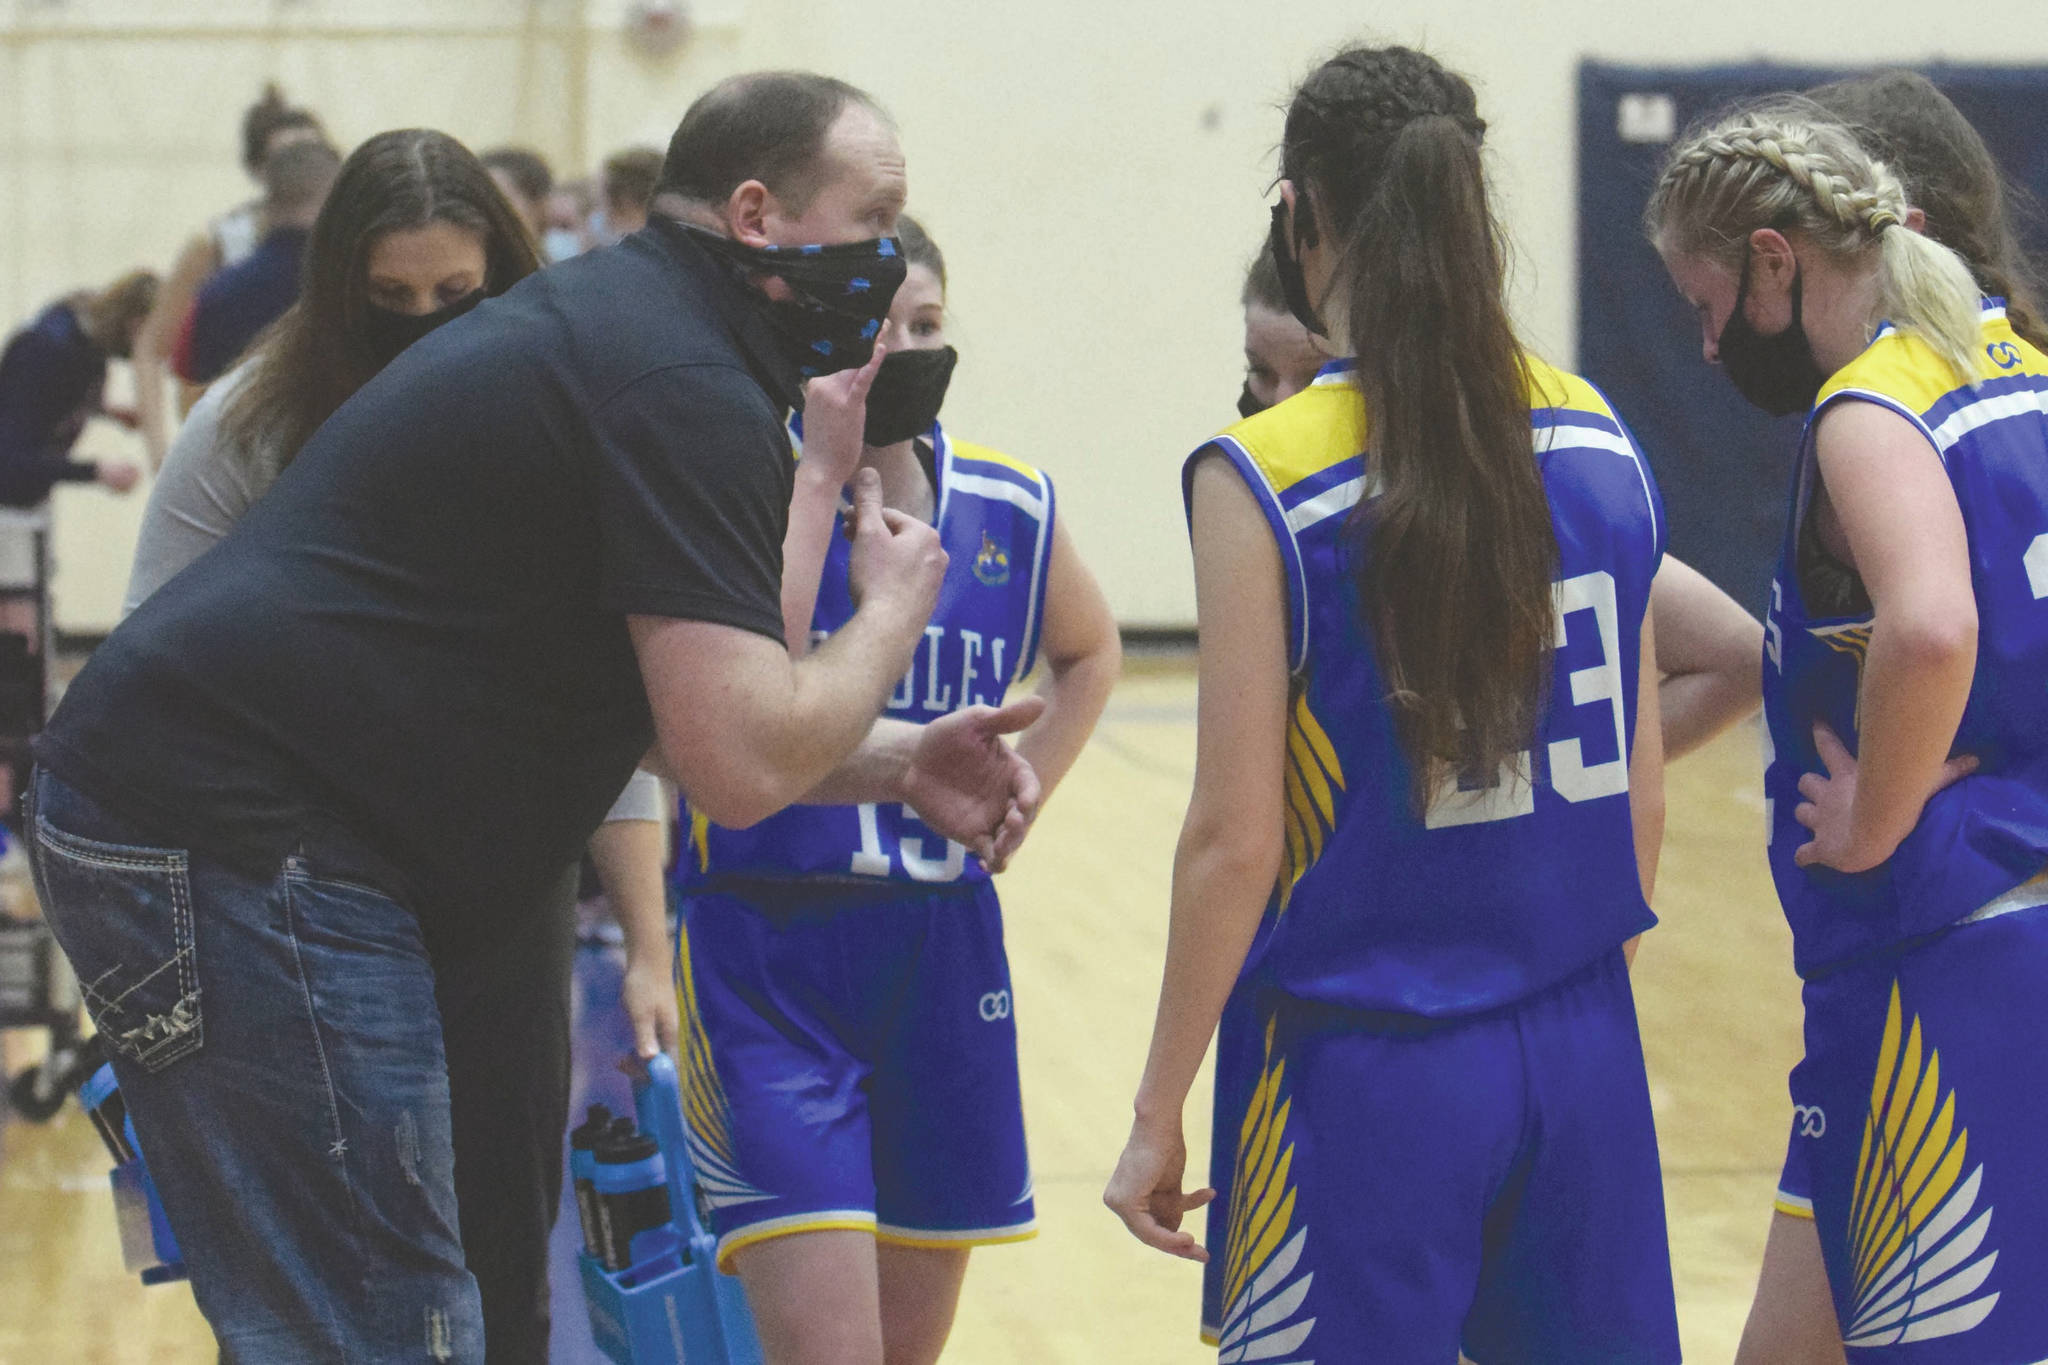 Cook Inlet Academy girls head coach Josh Hawley coaches at the Peninsula Conference tournament Friday, March 19, 2021, at Soldotna High School in Soldotna, Alaska. (Photo by Jeff Helminiak/Peninsula Clarion)